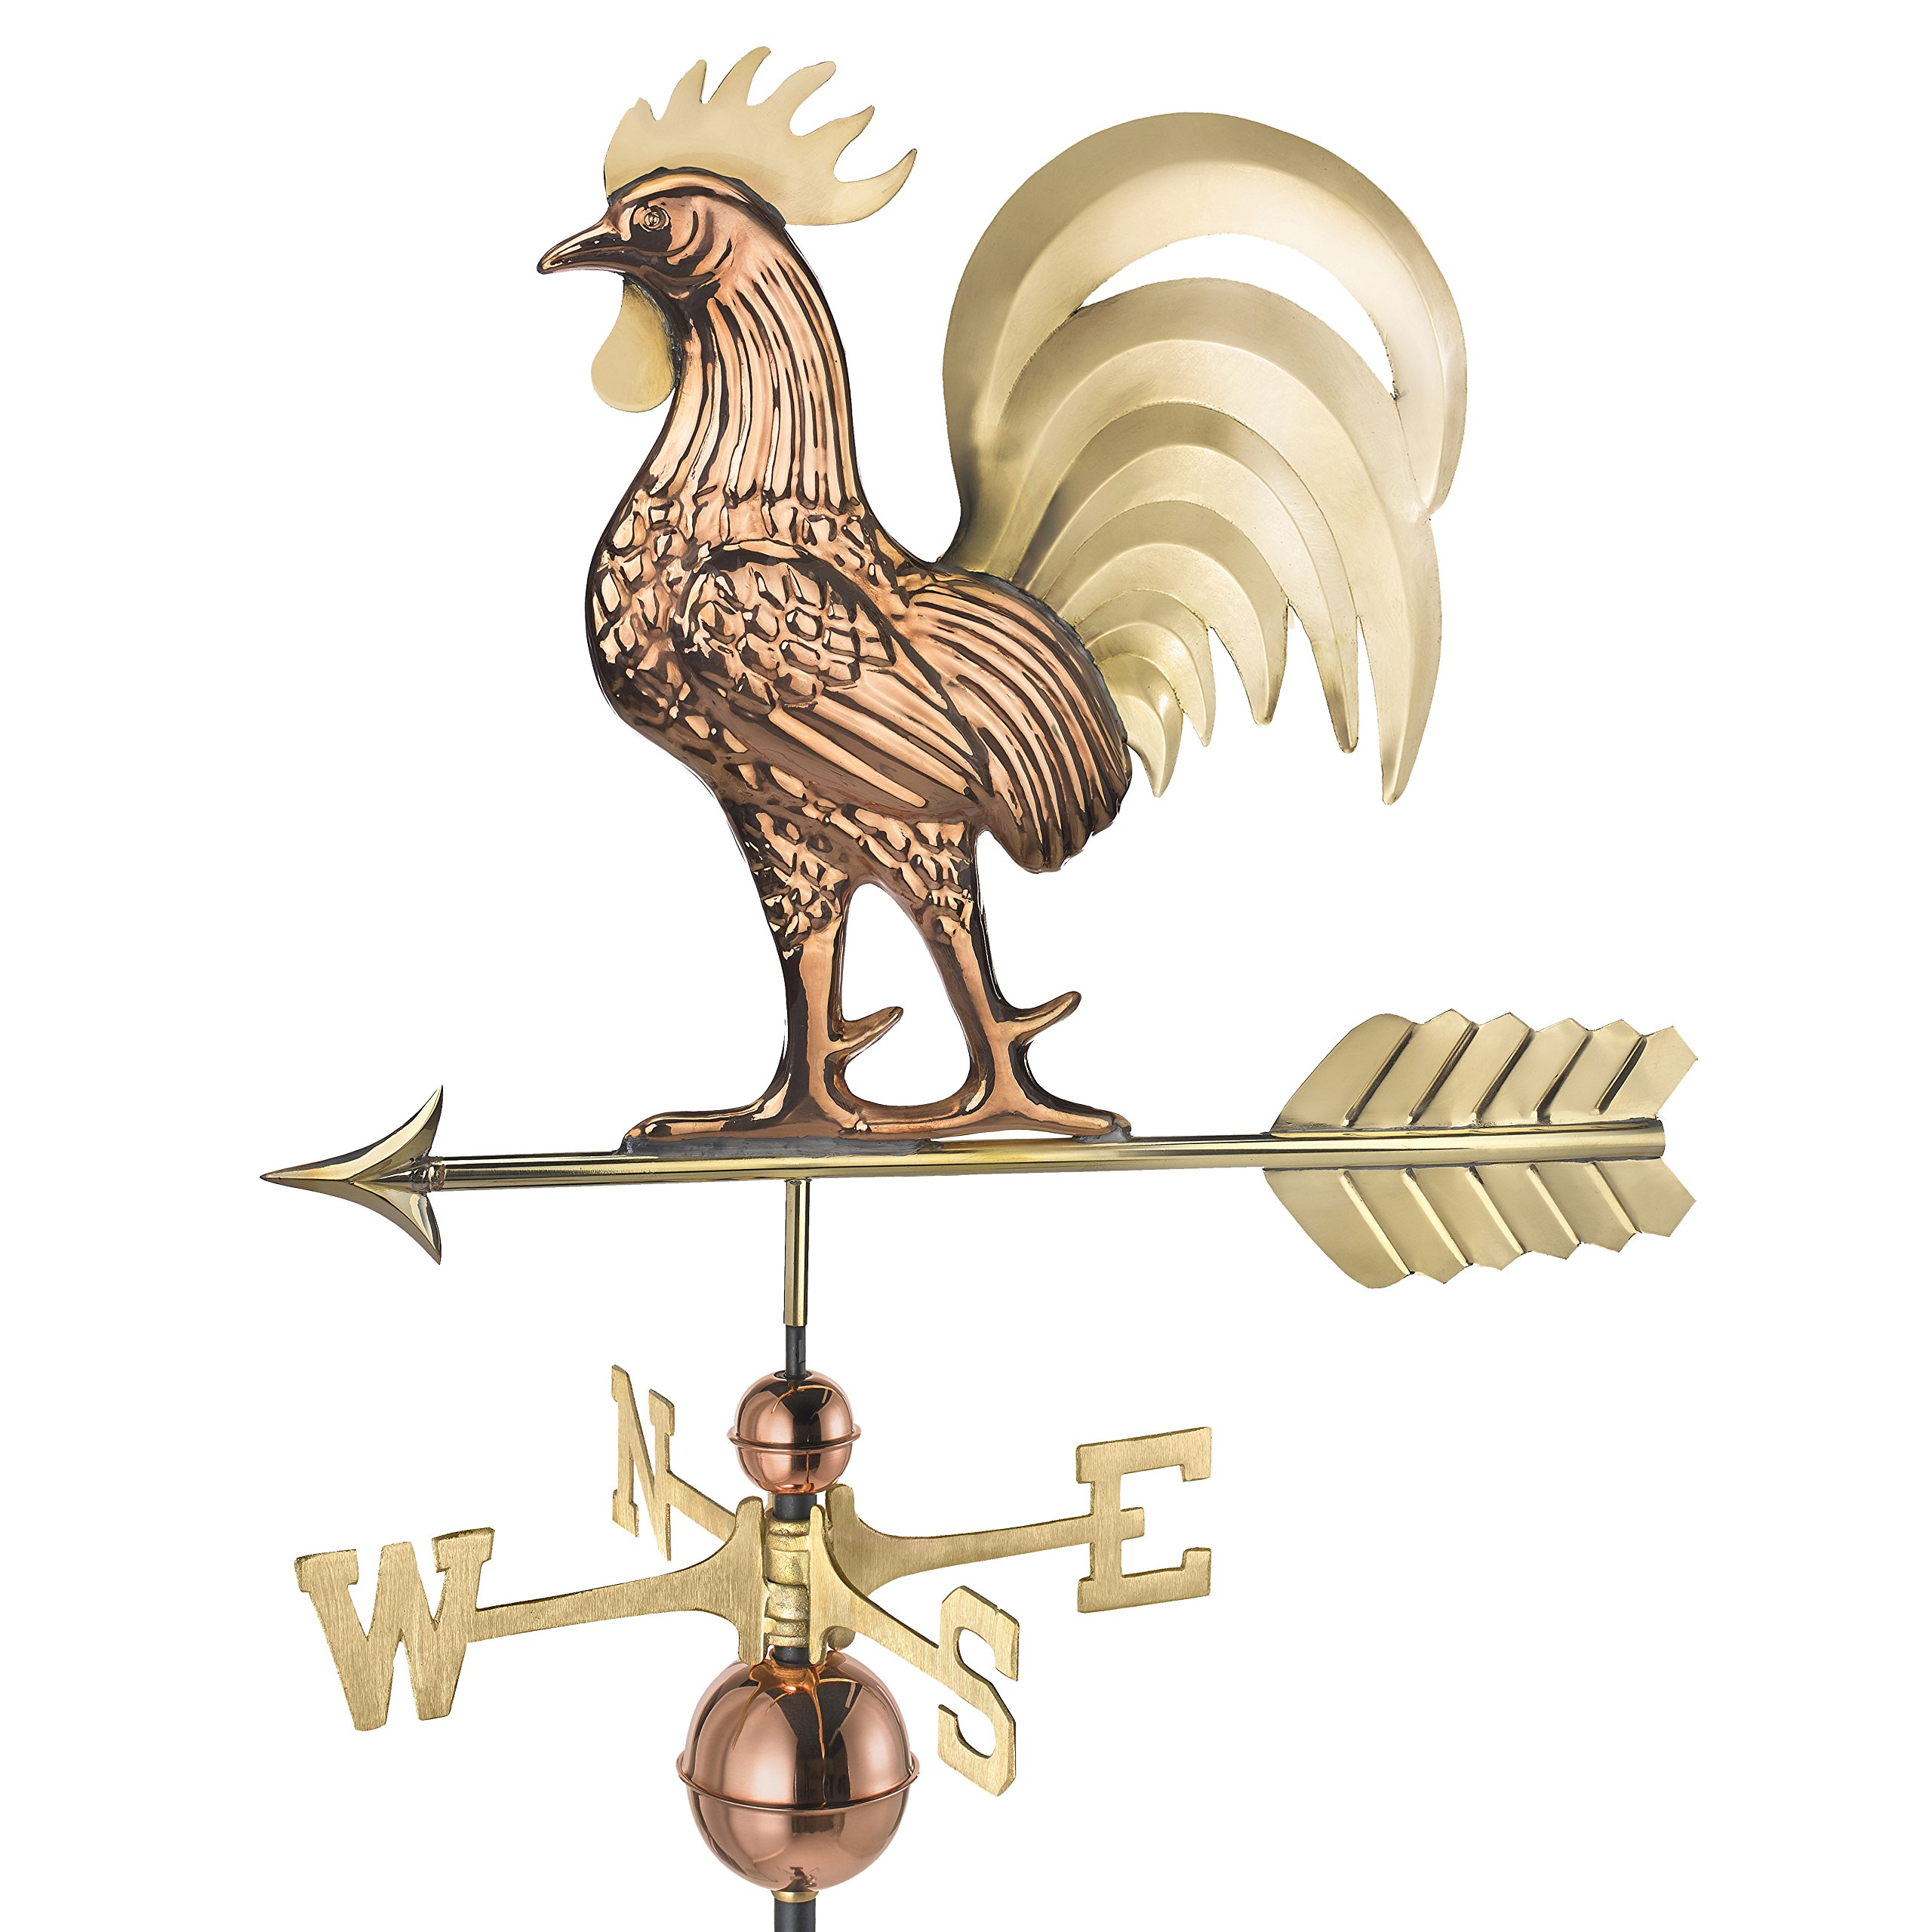 Good Directions Proud Rooster Weathervane - Pure Copper & Brass (26 inch), Rooftop Ornament, Wind Vane, Roof Décor